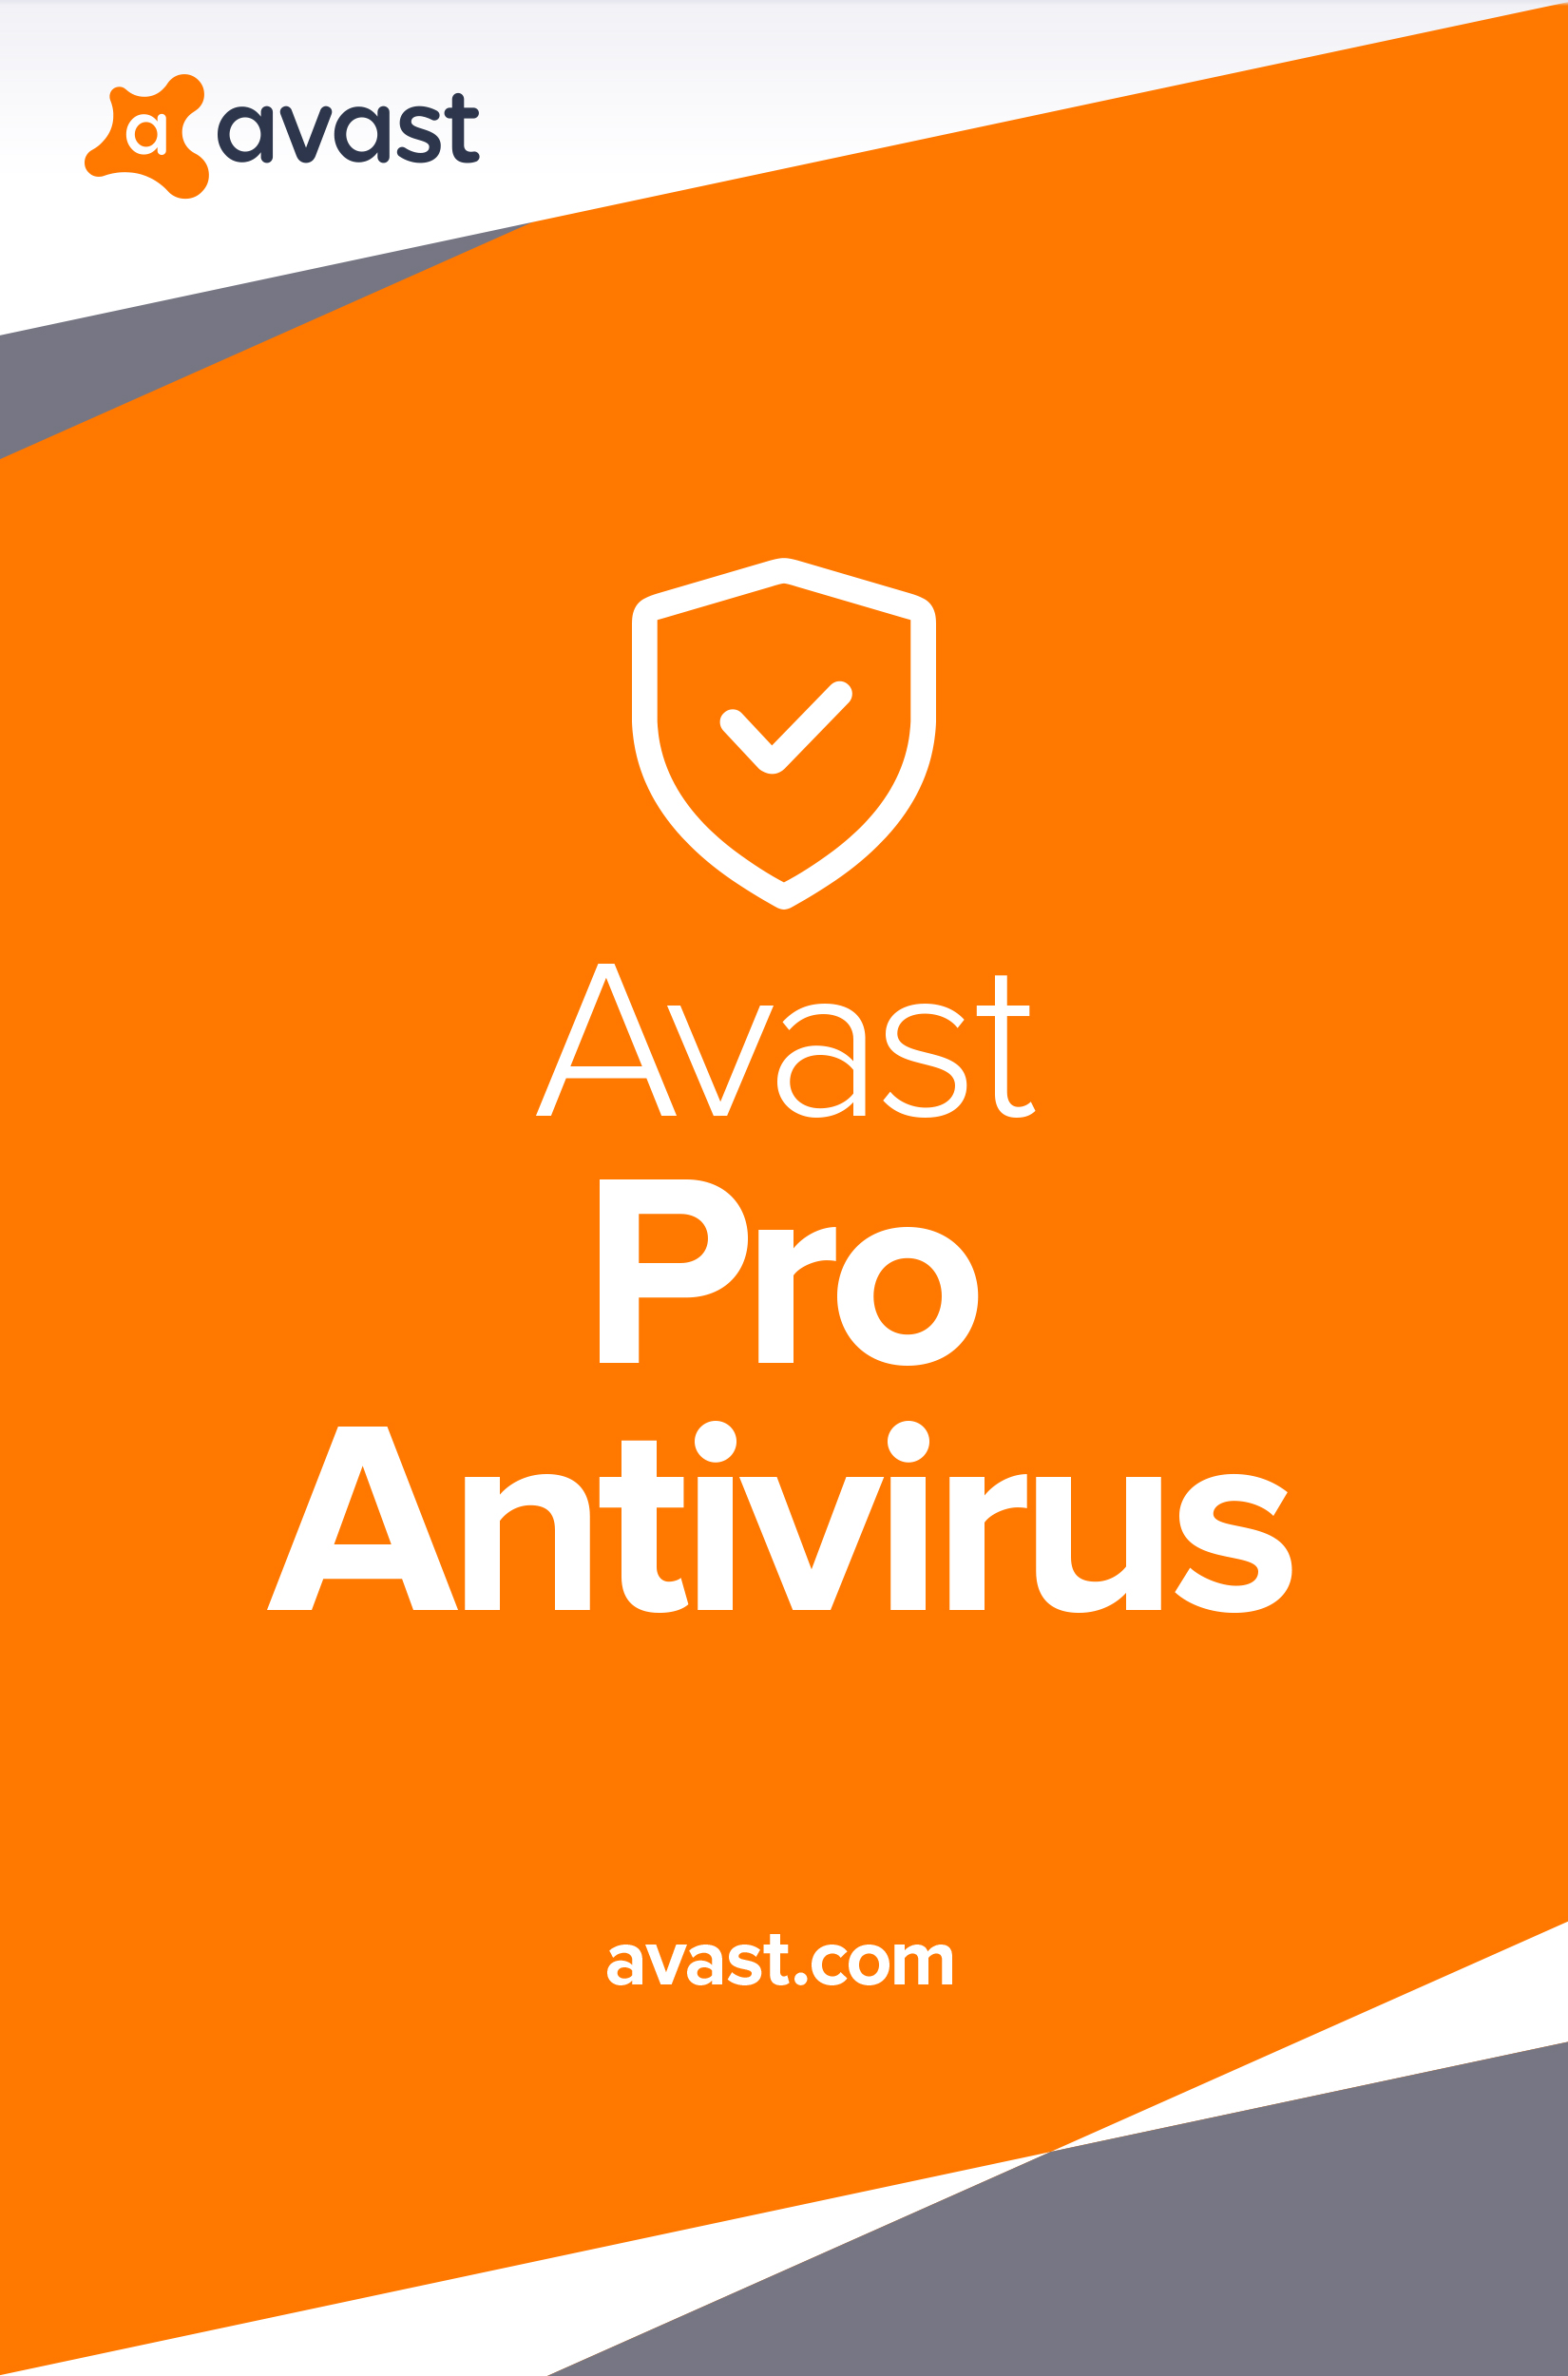 avast full free download crack